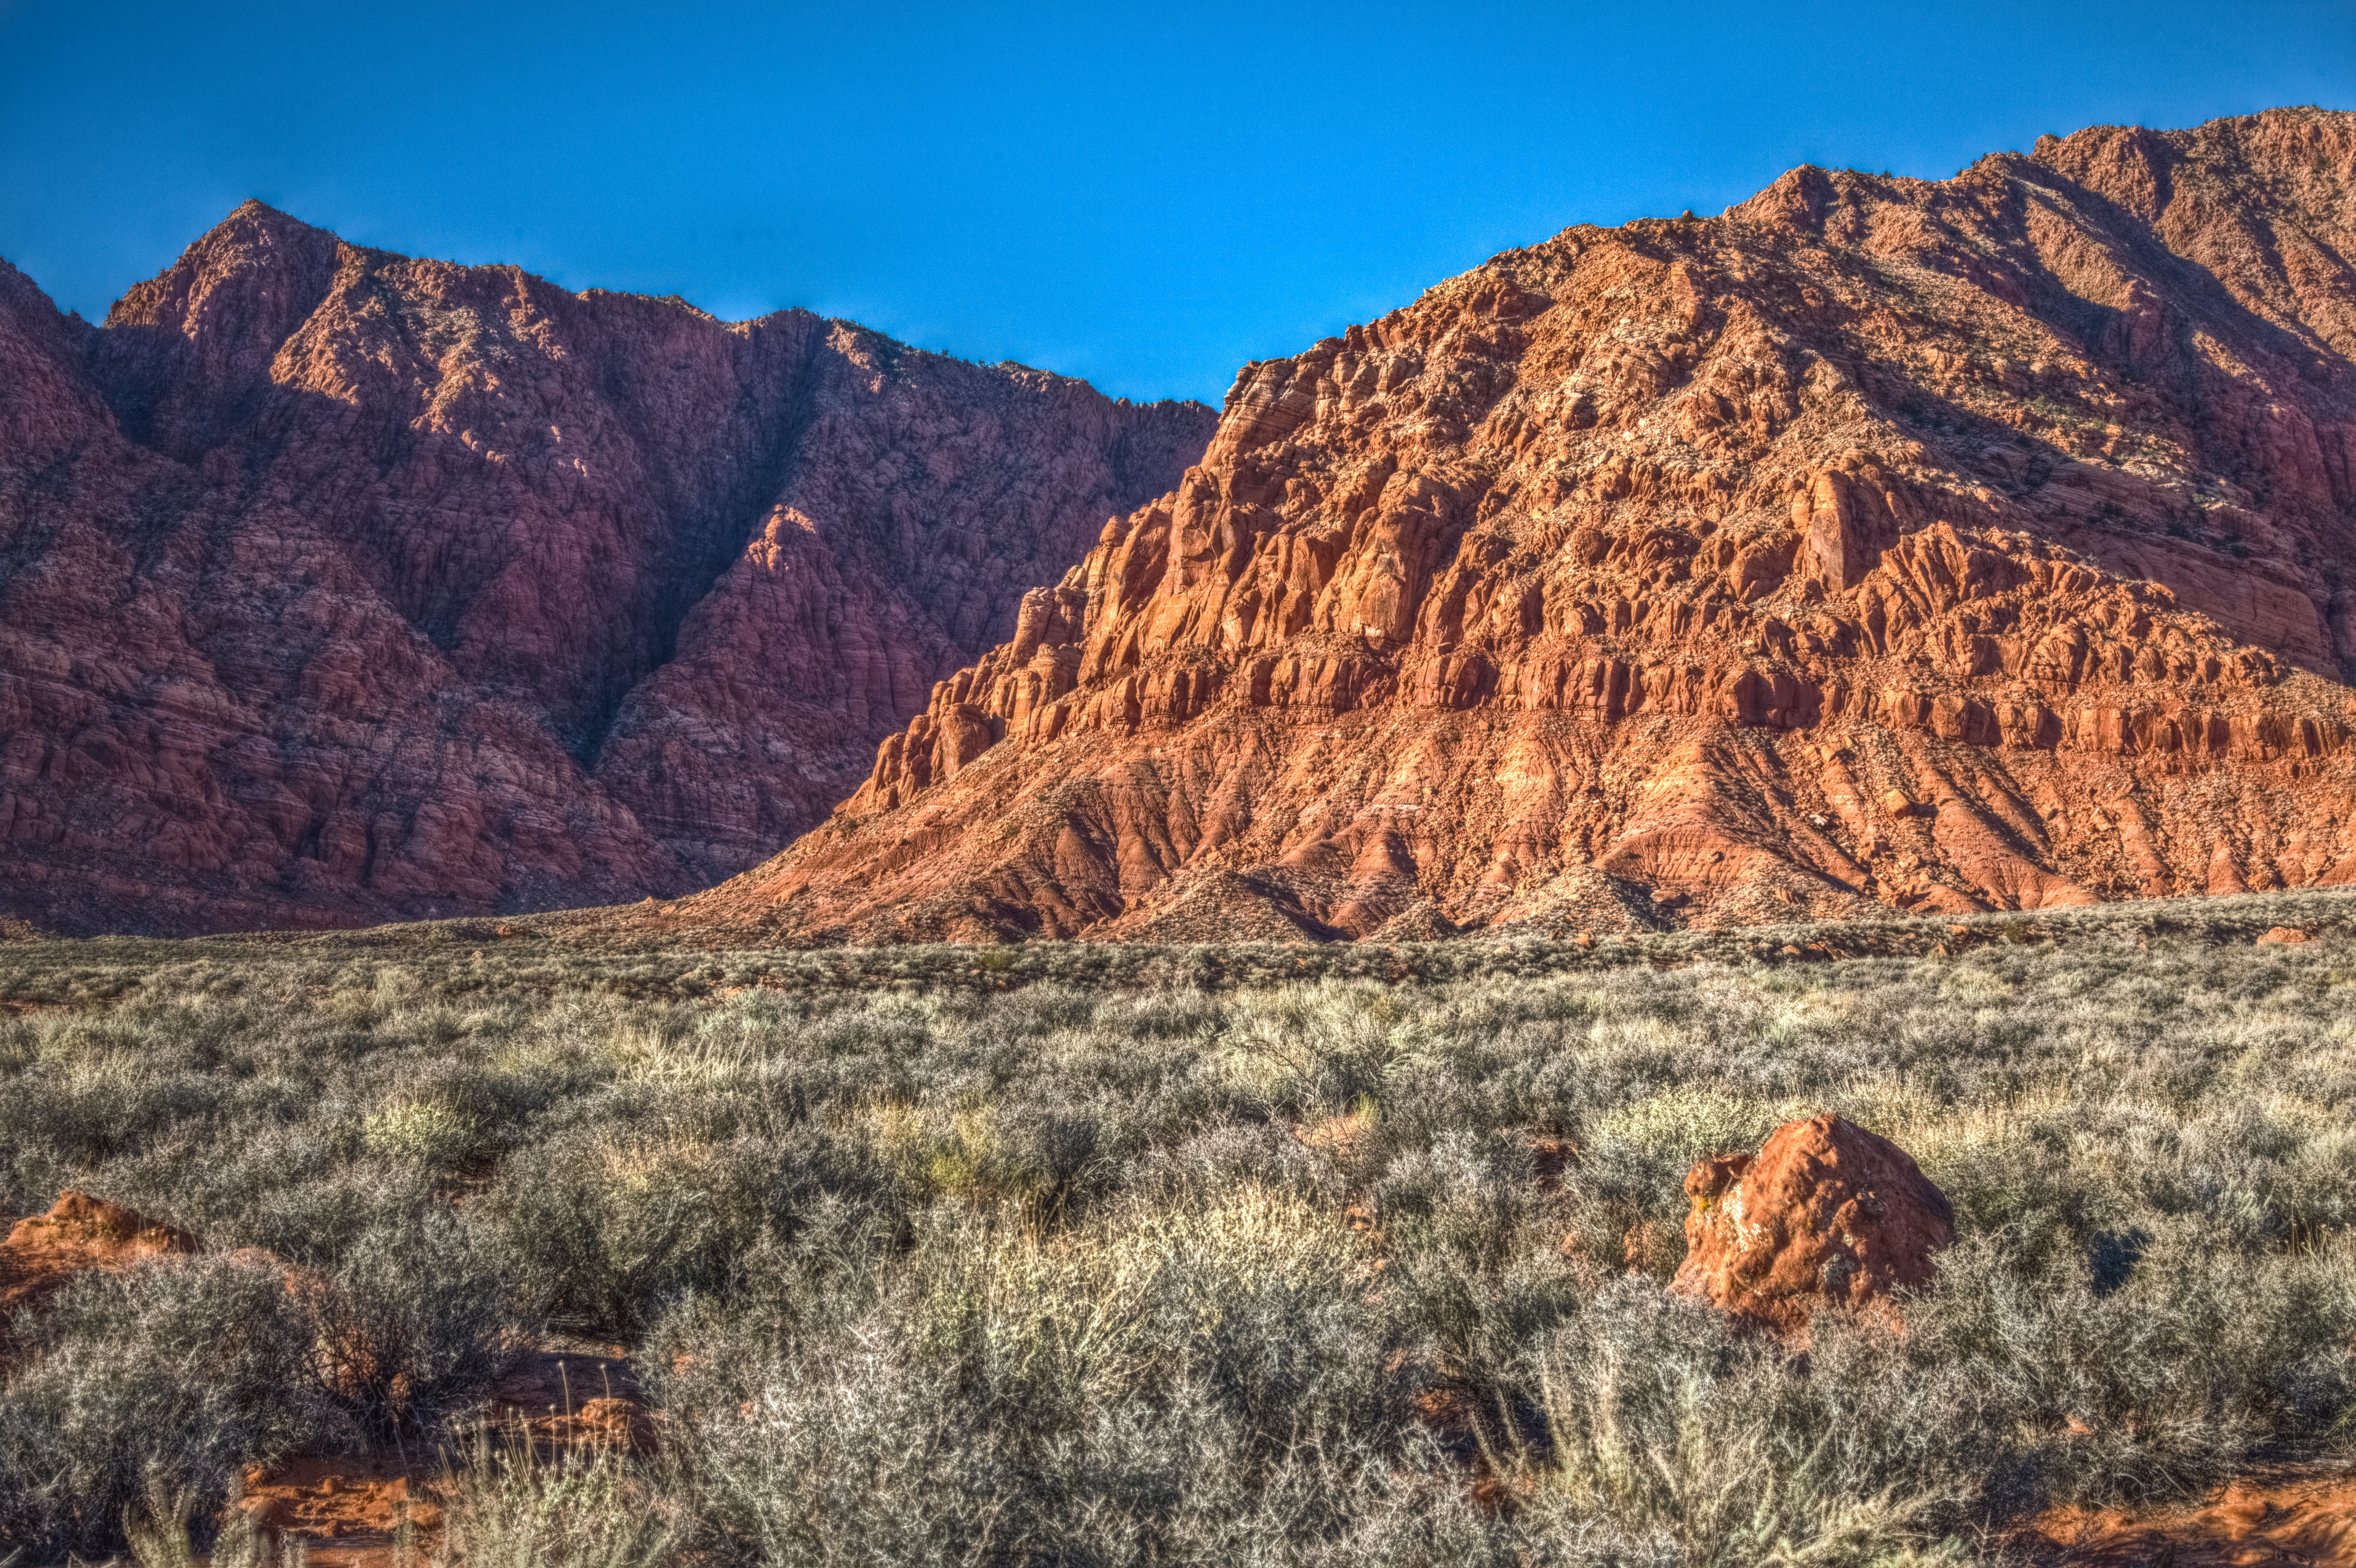 Red rocky mountains in a grassy desert valley